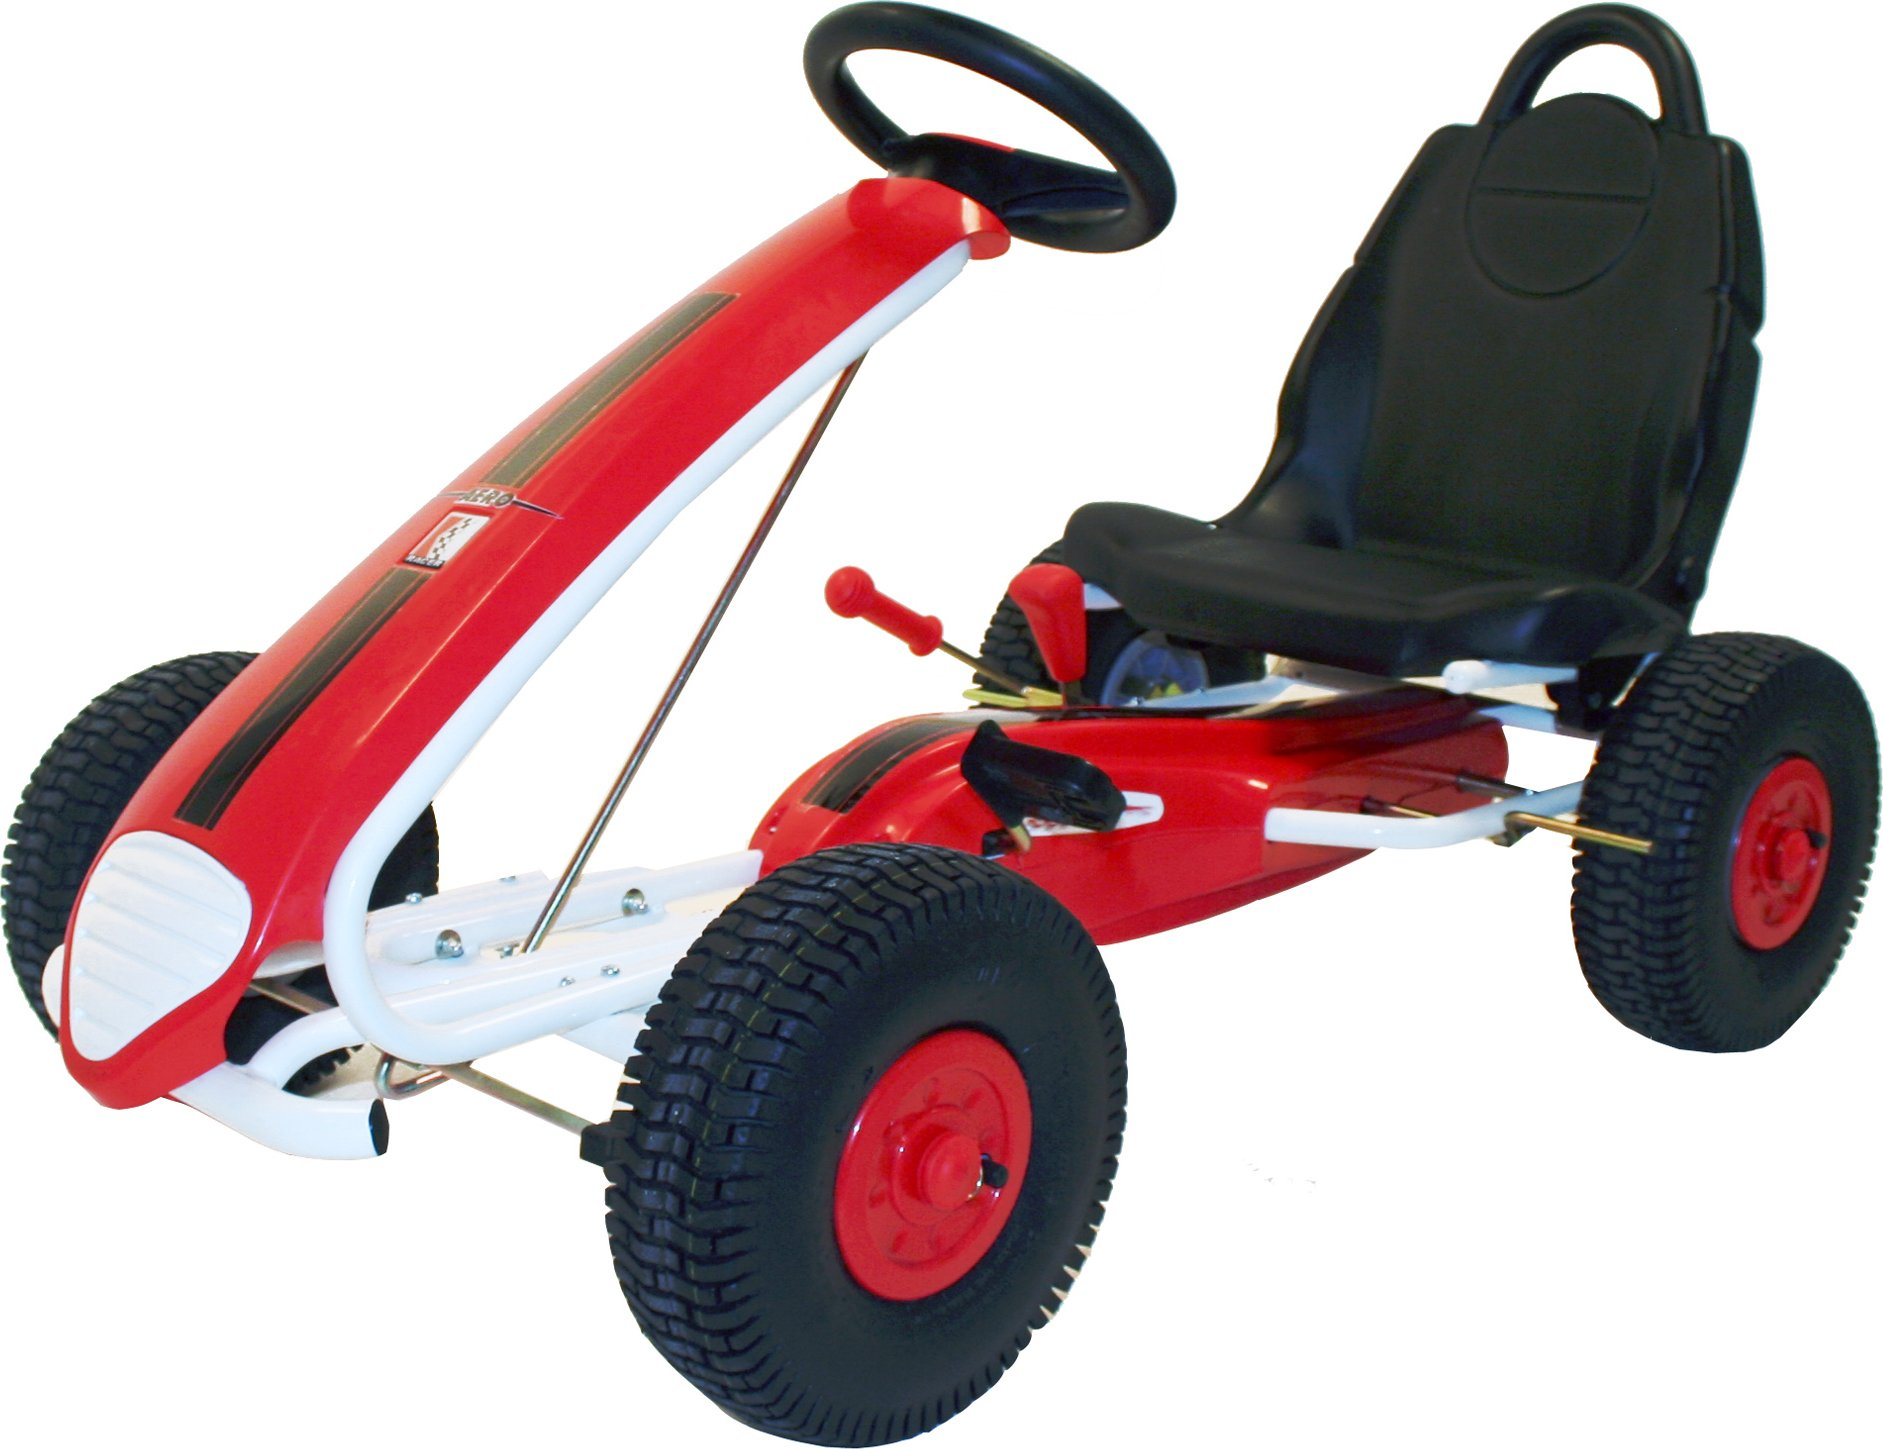 Kiddi-o by Kettler Aero Racer Pedal Car/Go Kart, Youth Ages 5+